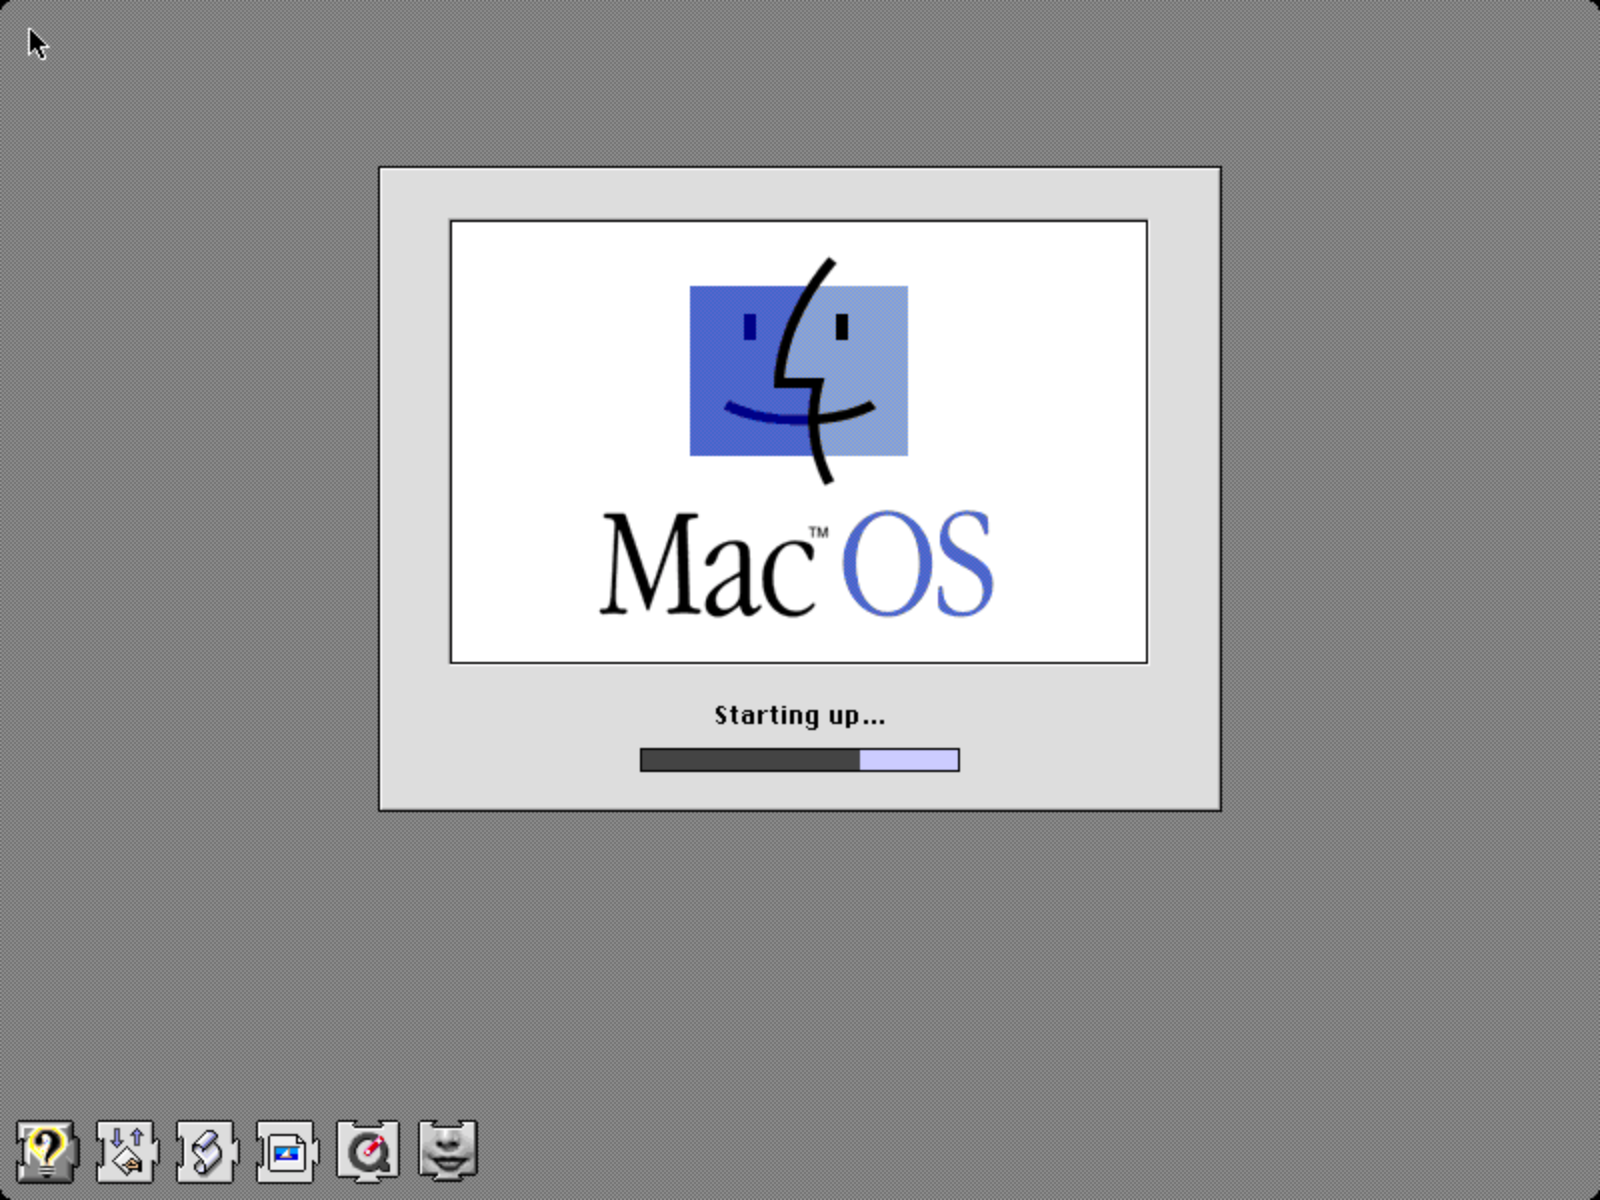 Mac OS System 7.5 welcome screen (1994)